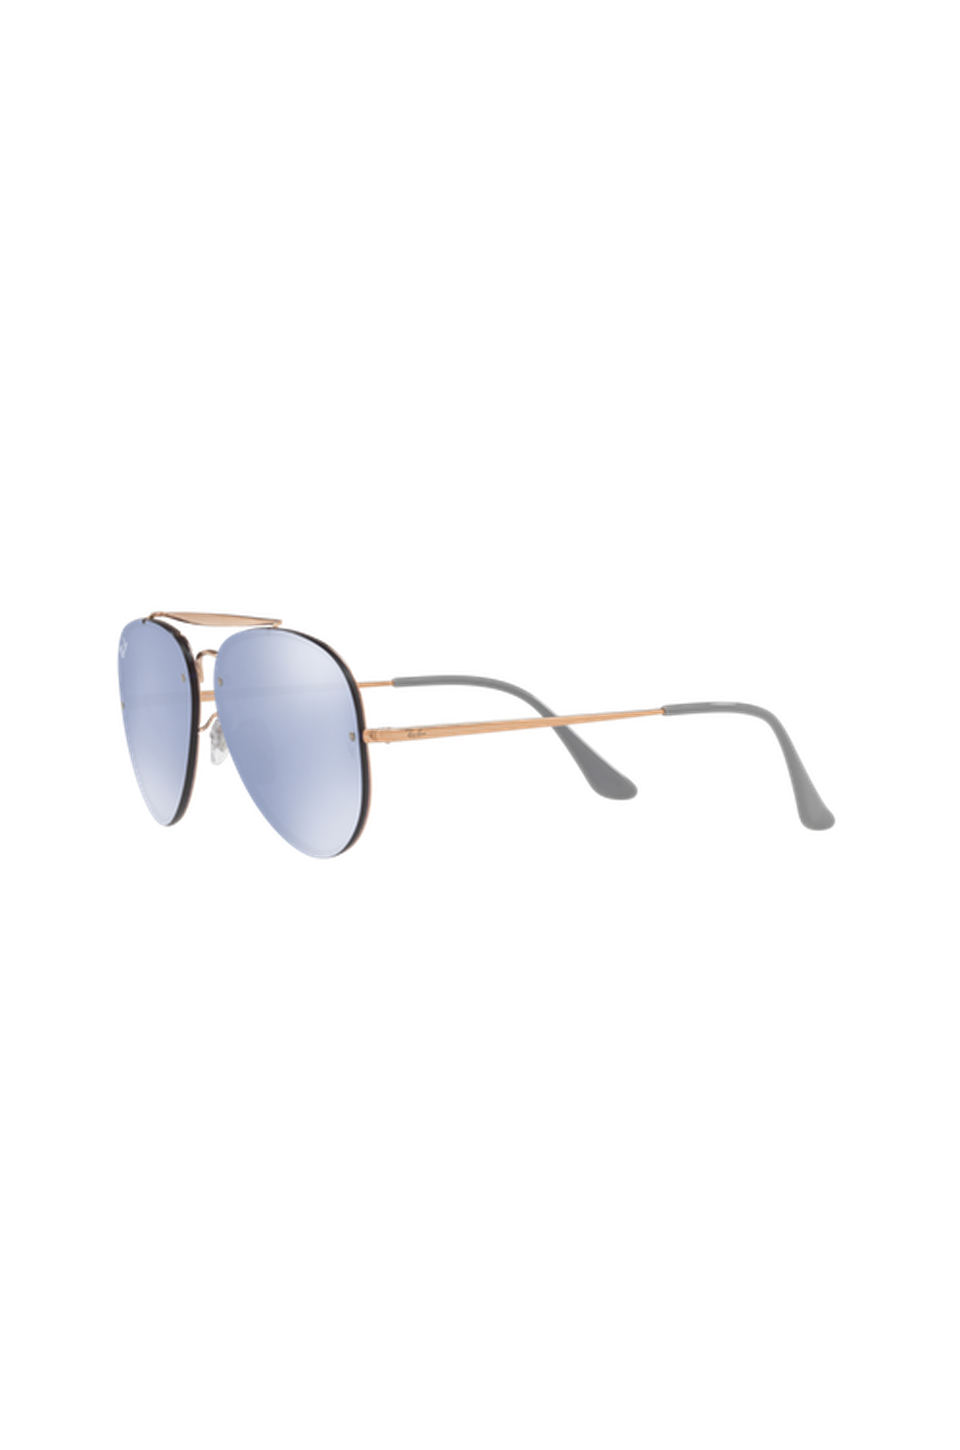 Ray-Ban RB3584N Highstreet Blaze Mirror Aviator Sunglasses